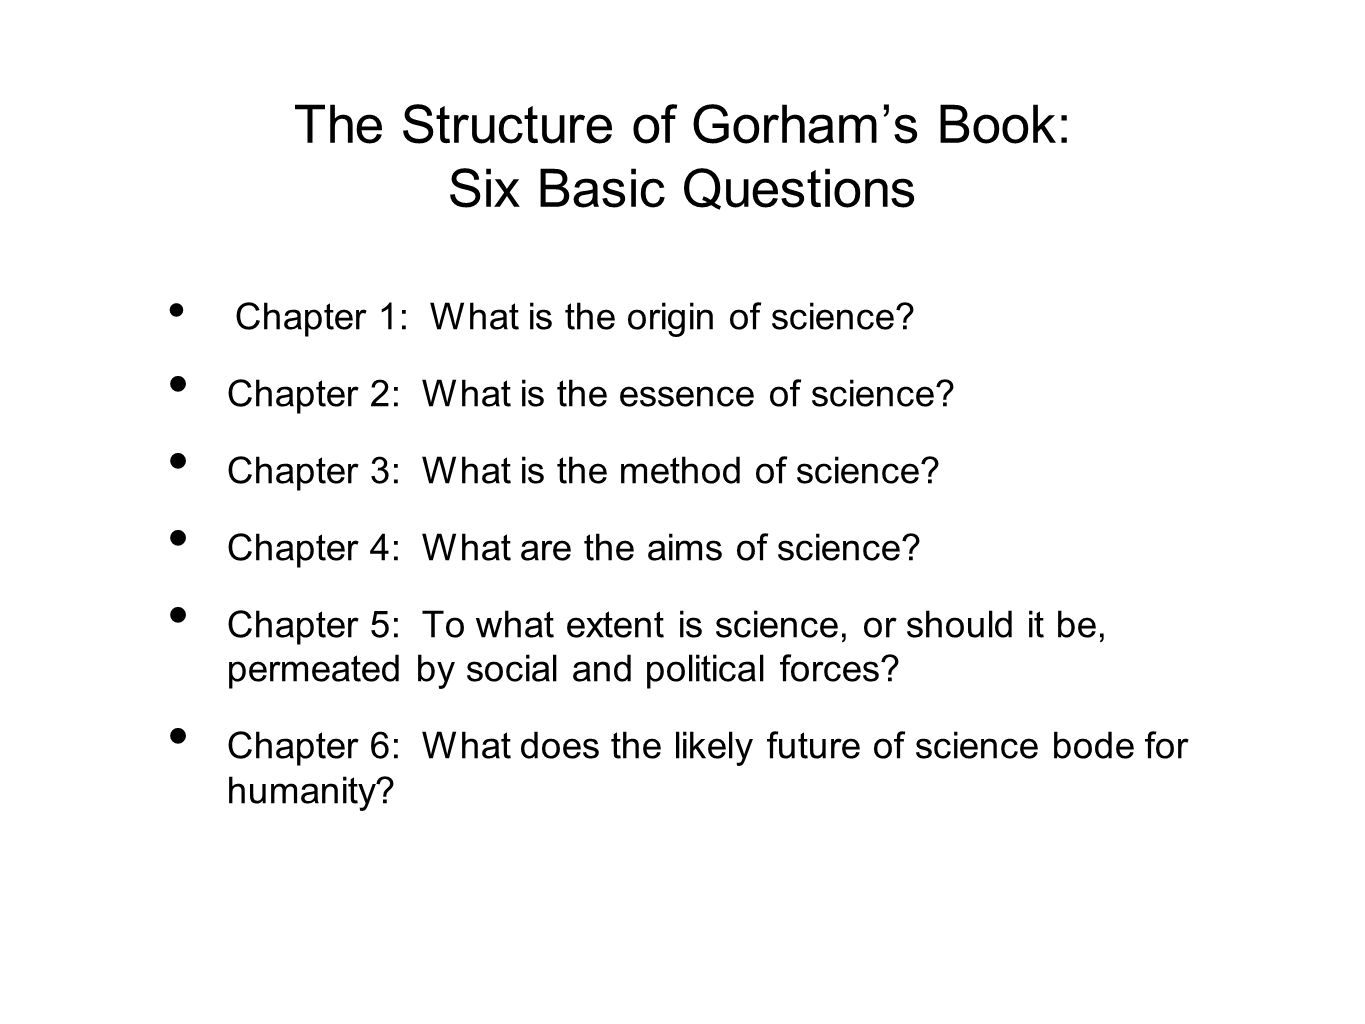 The Structure of Gorham's Book: Six Basic Questions